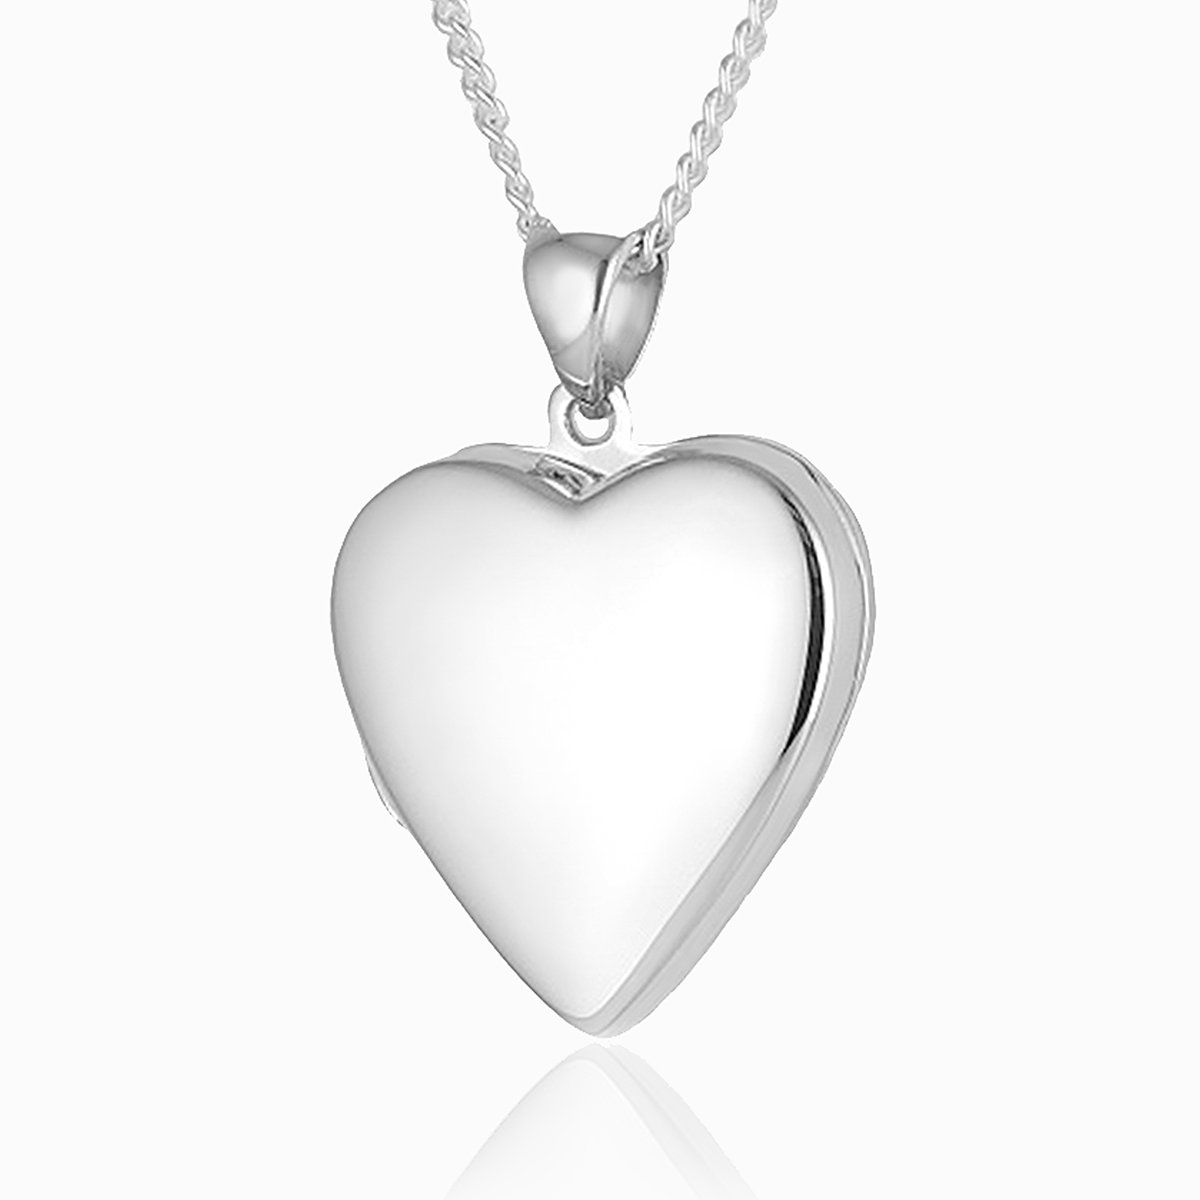 Product title: Contemporary Plain Silver Heart, product type: Locket